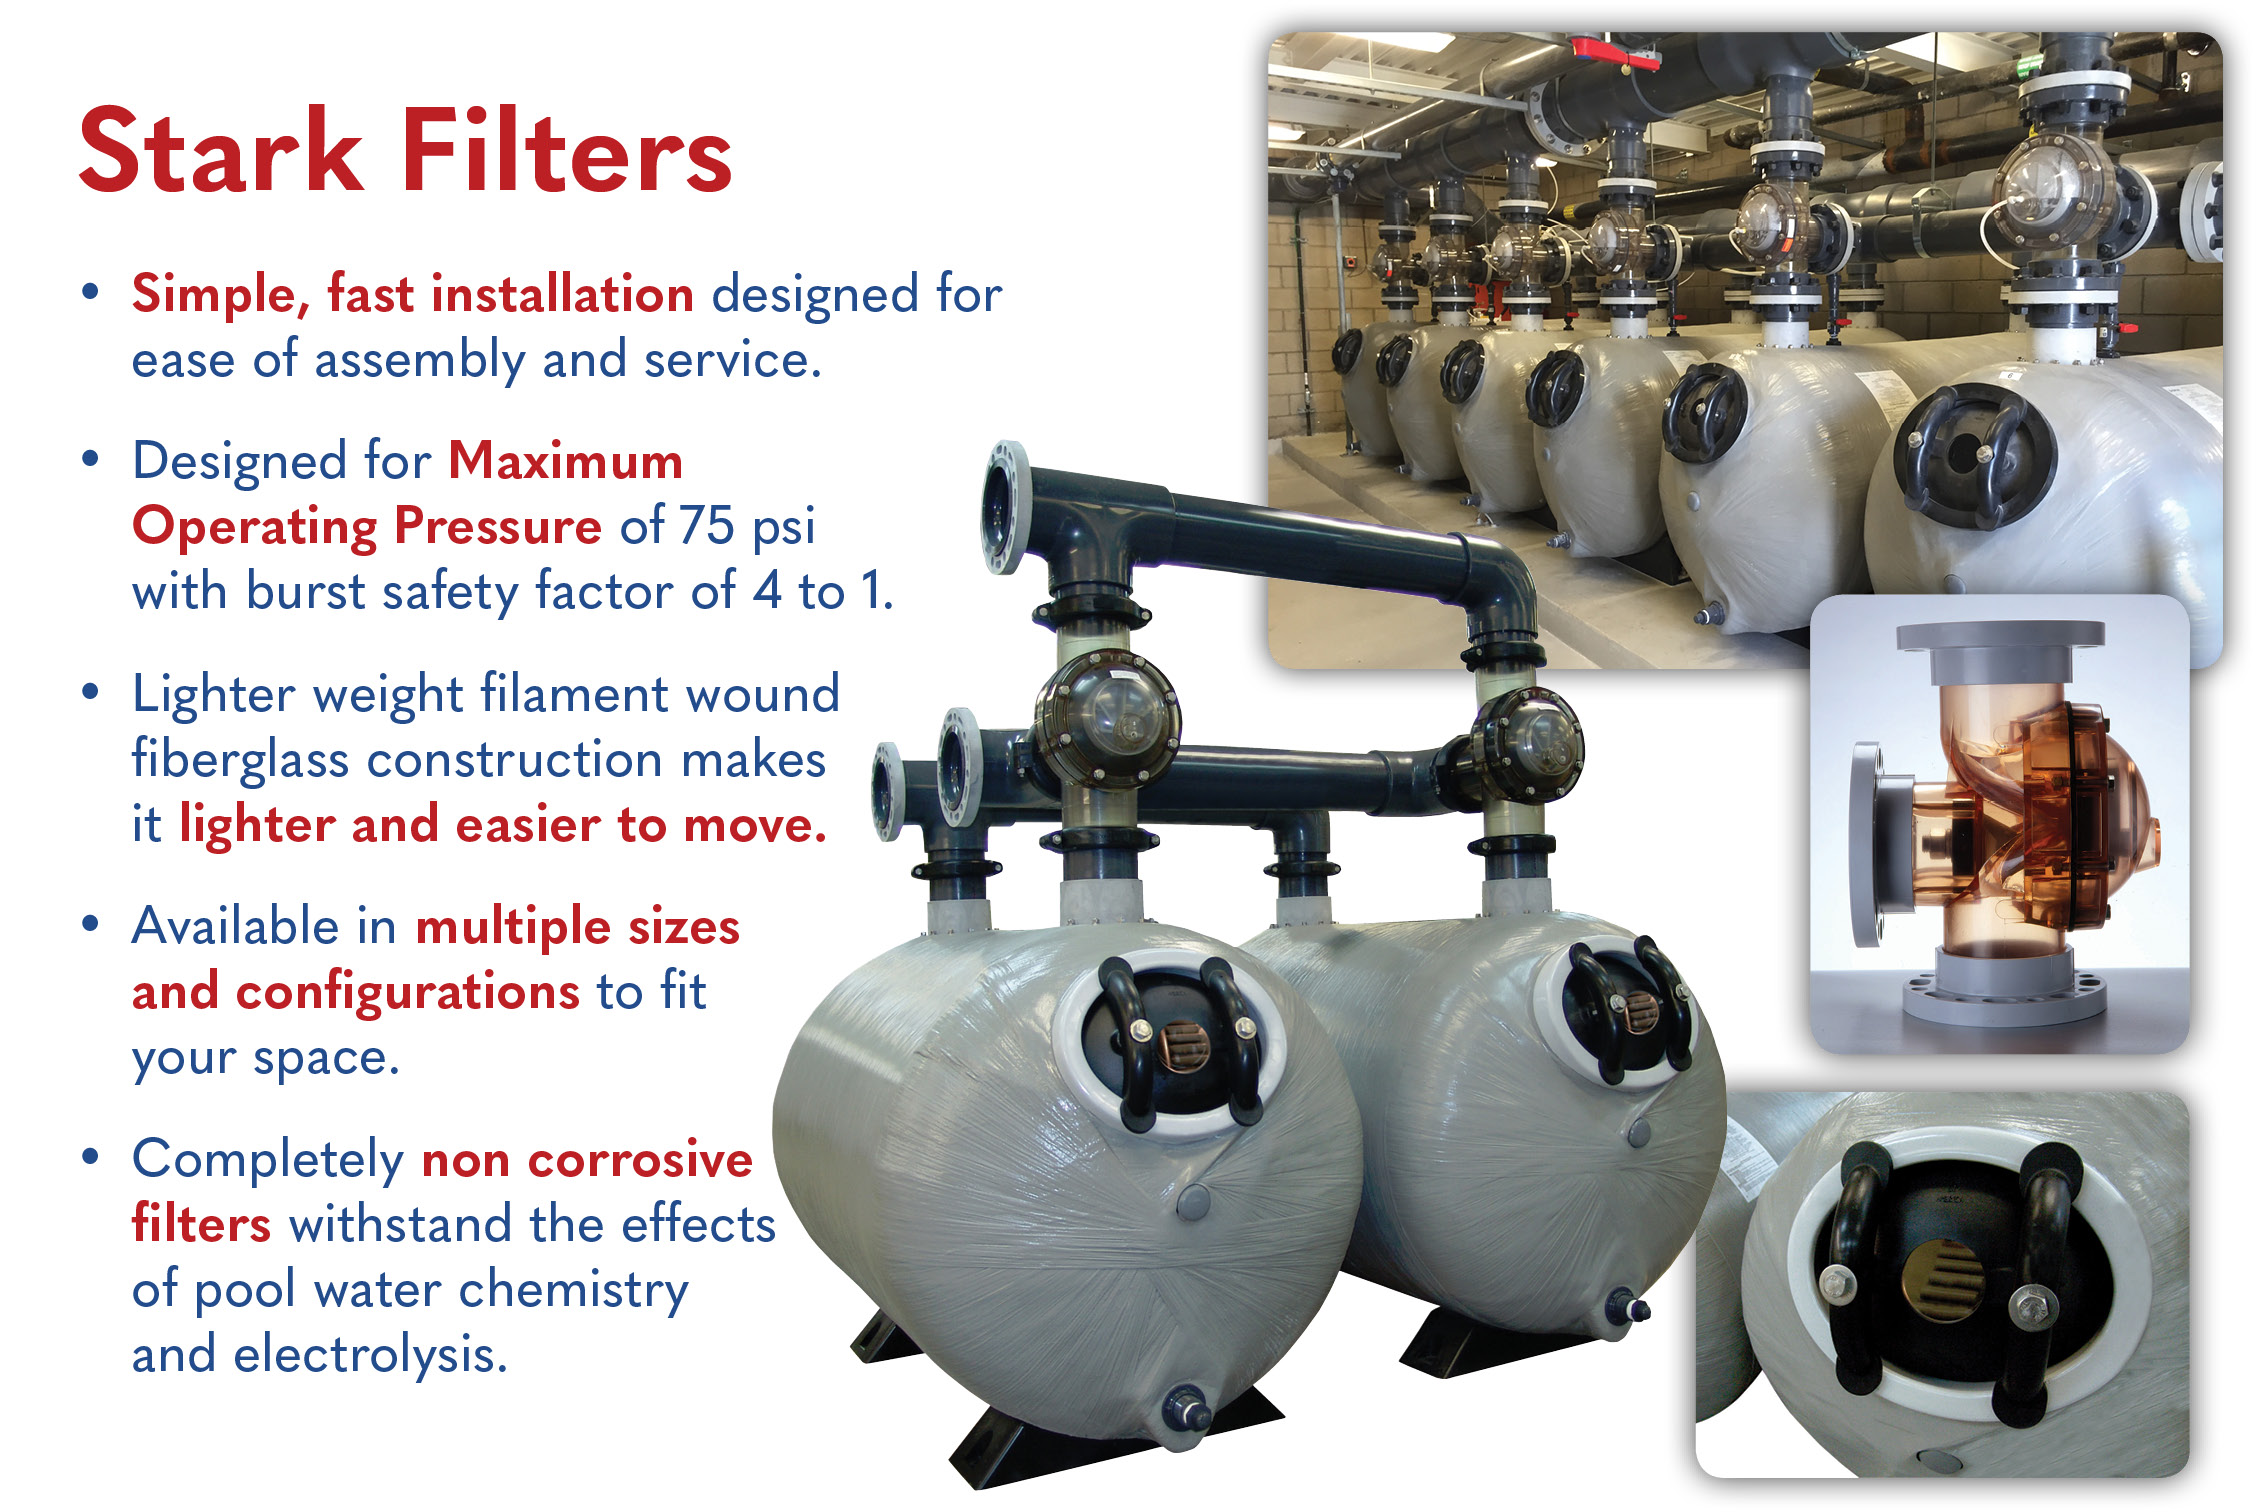 Home Lincoln Aquatics Hayward Pool Filter System Diagram Fill In Service Cch Stark Filters